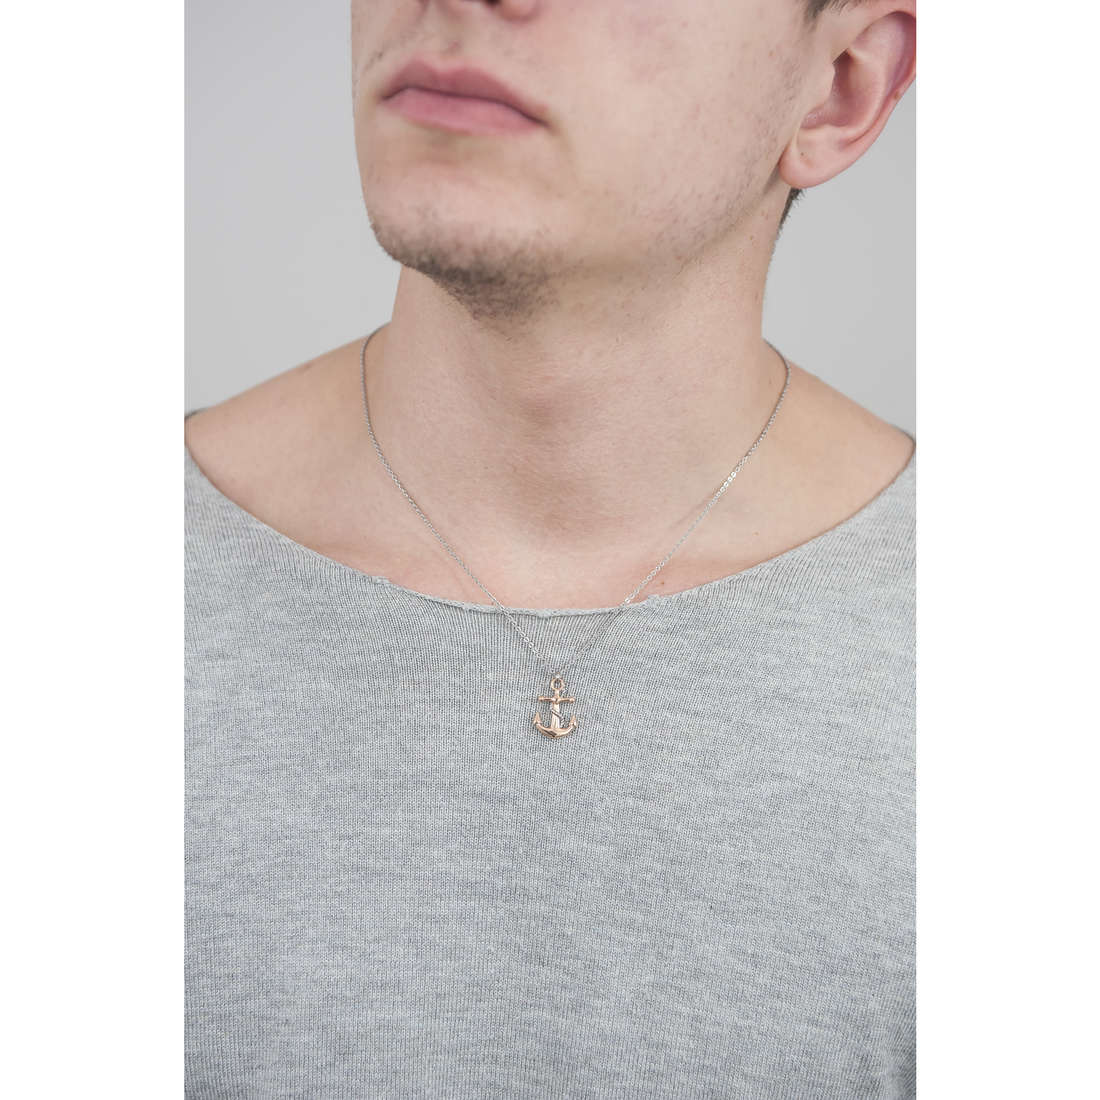 Luca Barra necklaces man LBCA367 photo wearing